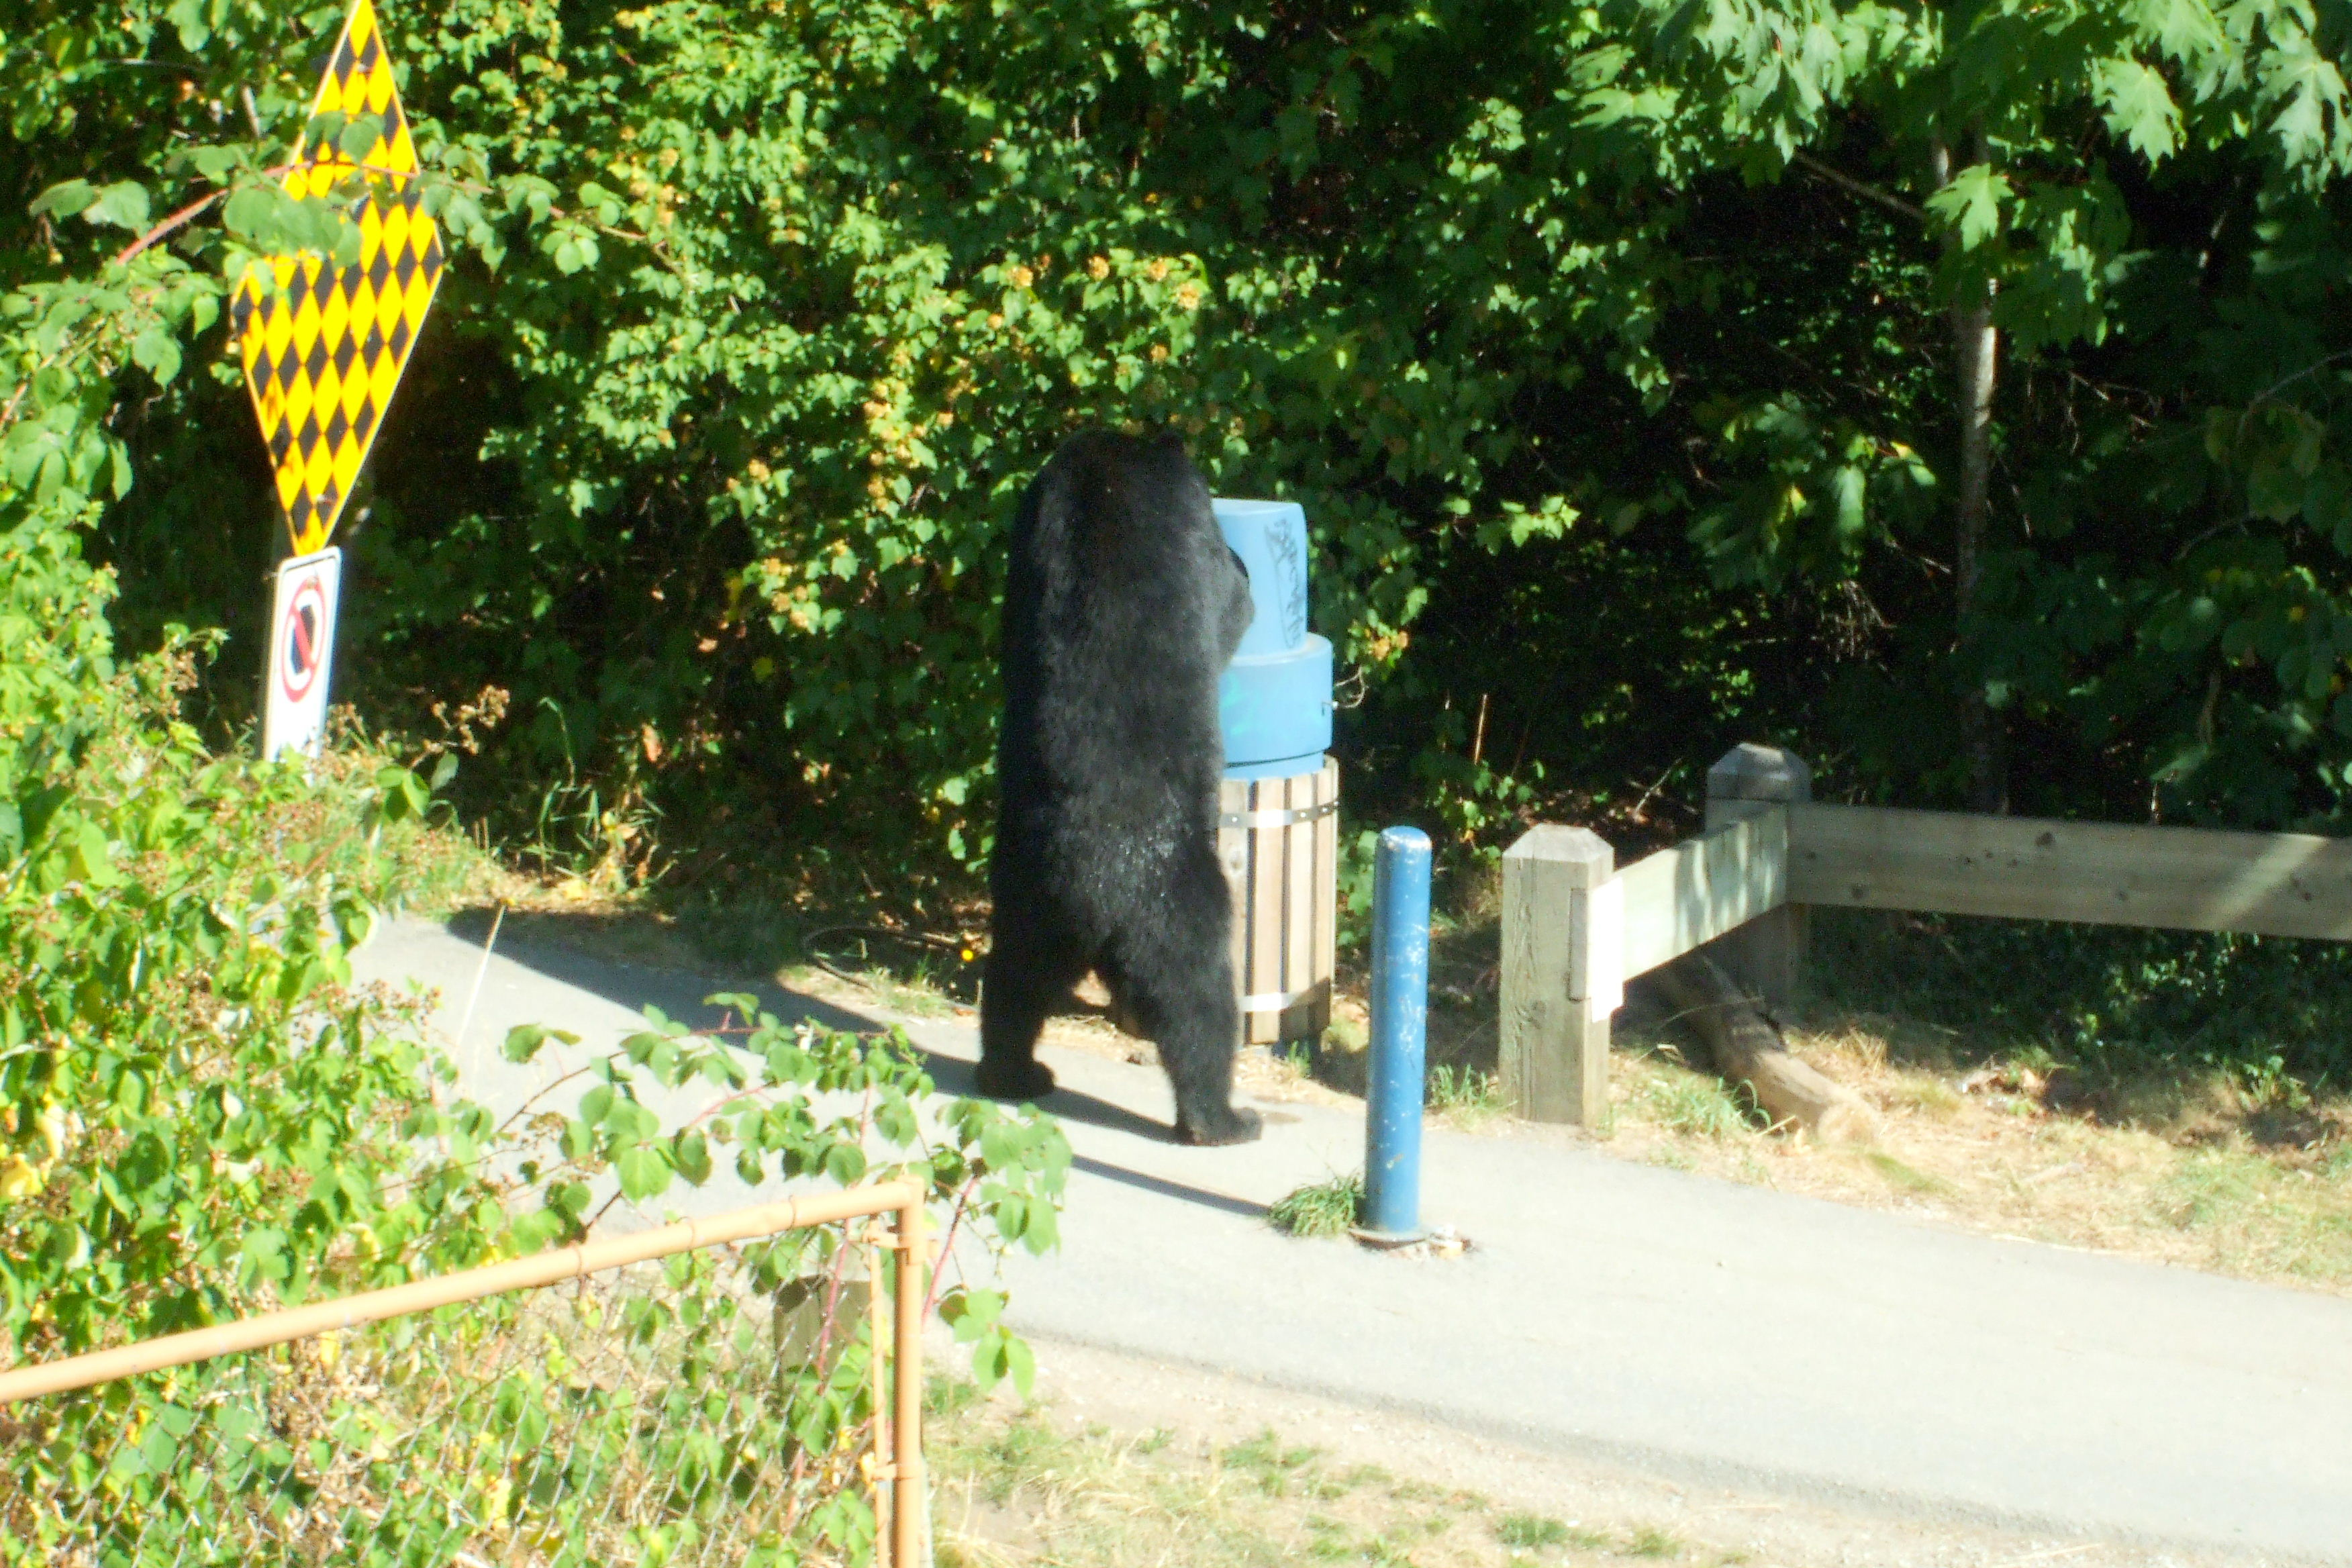 bear in city bin